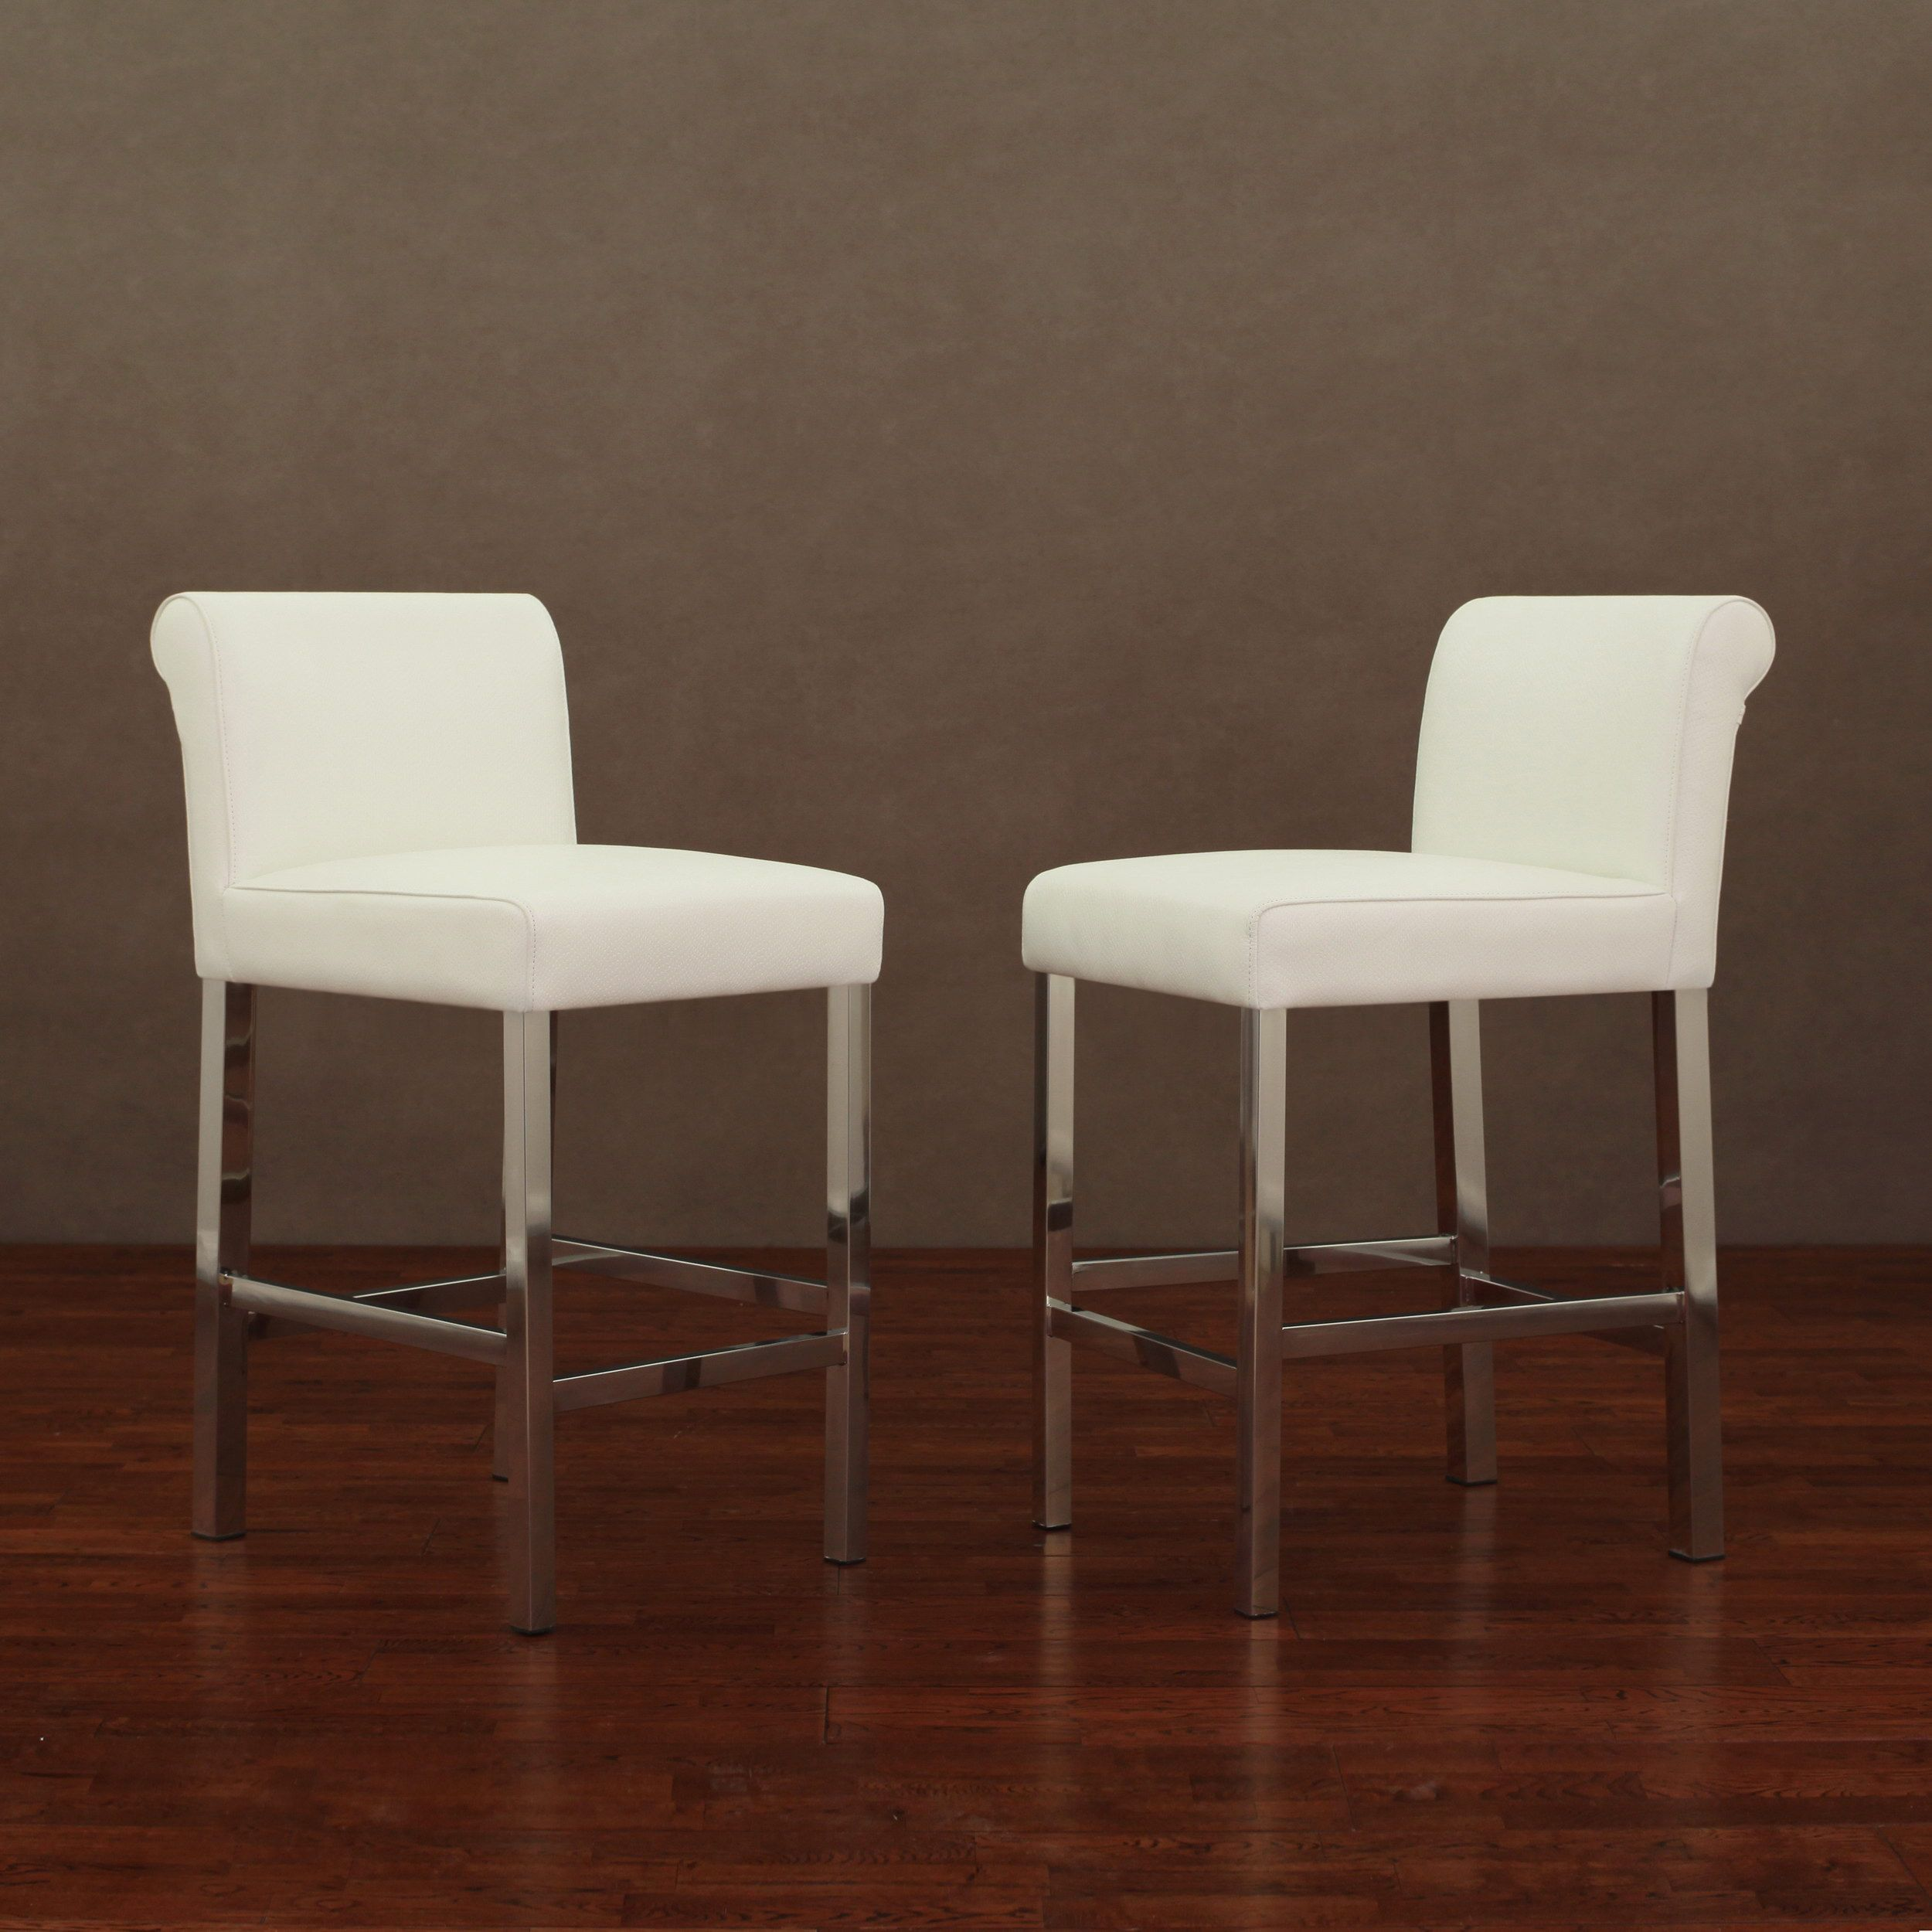 Other Home Furnitures Bangalore Furniture Manufacturers: Cosmopolitan Stainless Steel White Snake Leather Counter